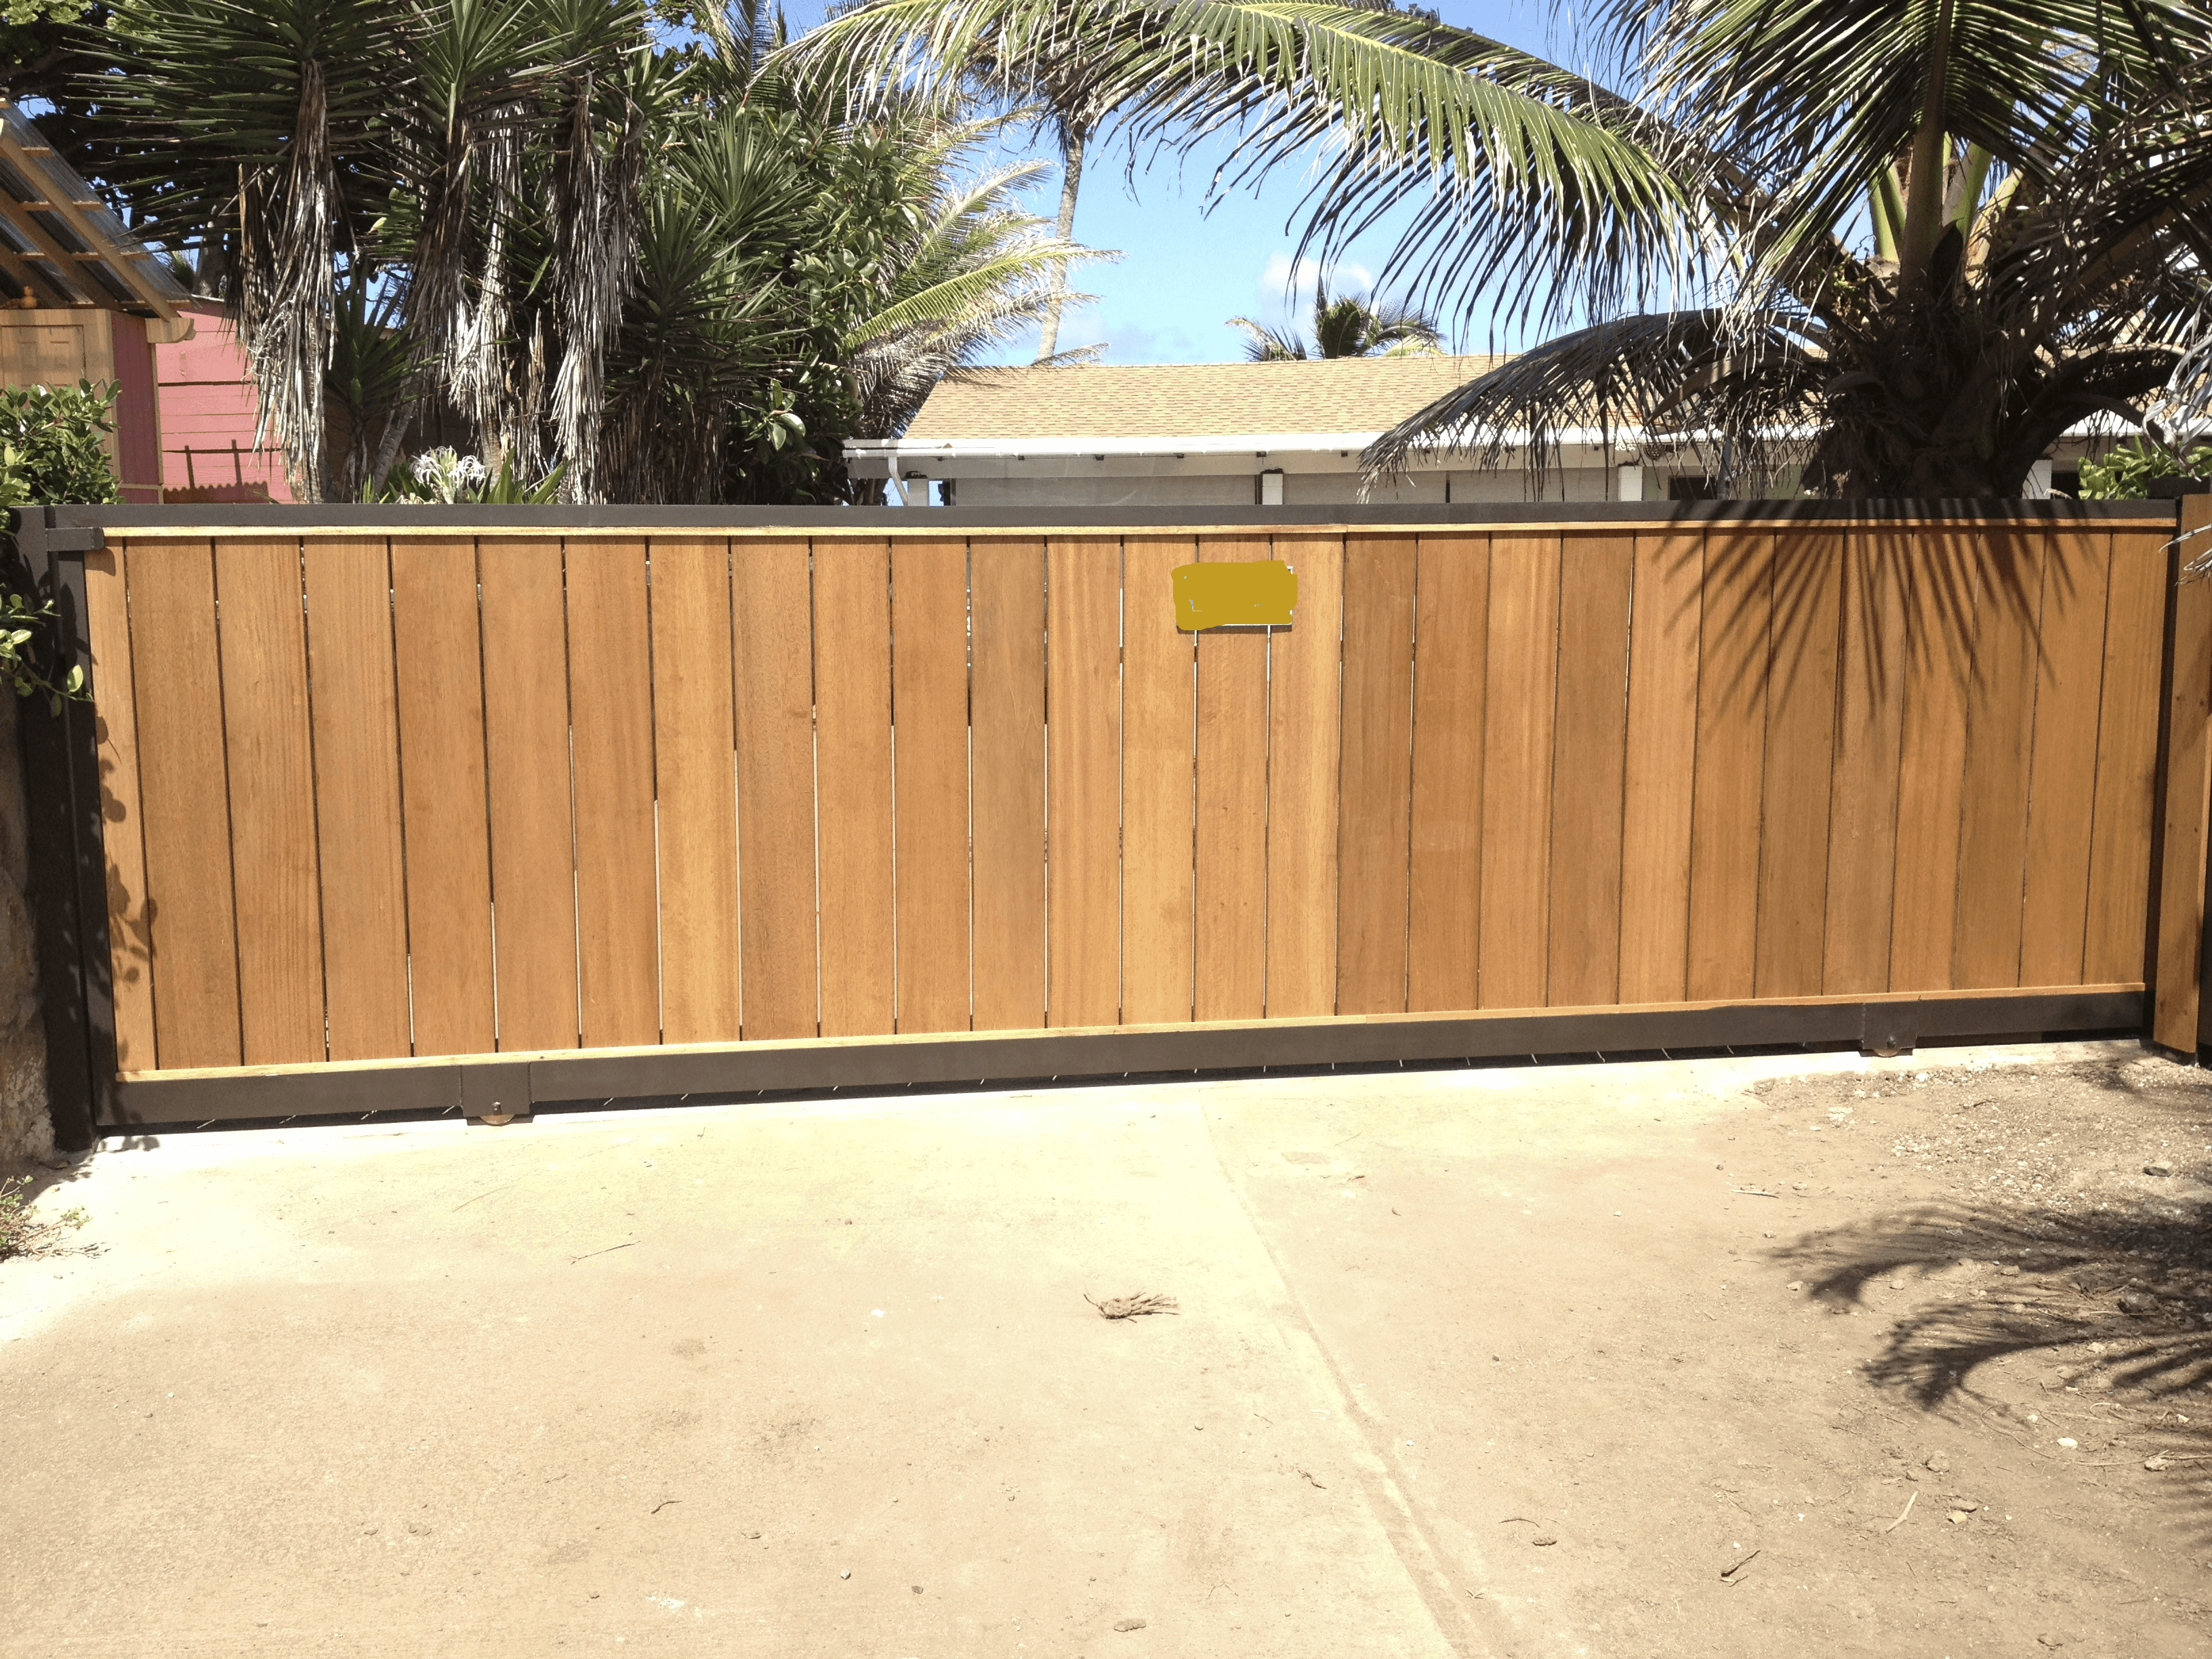 Sliding wood gate built for a residential property in Hauula